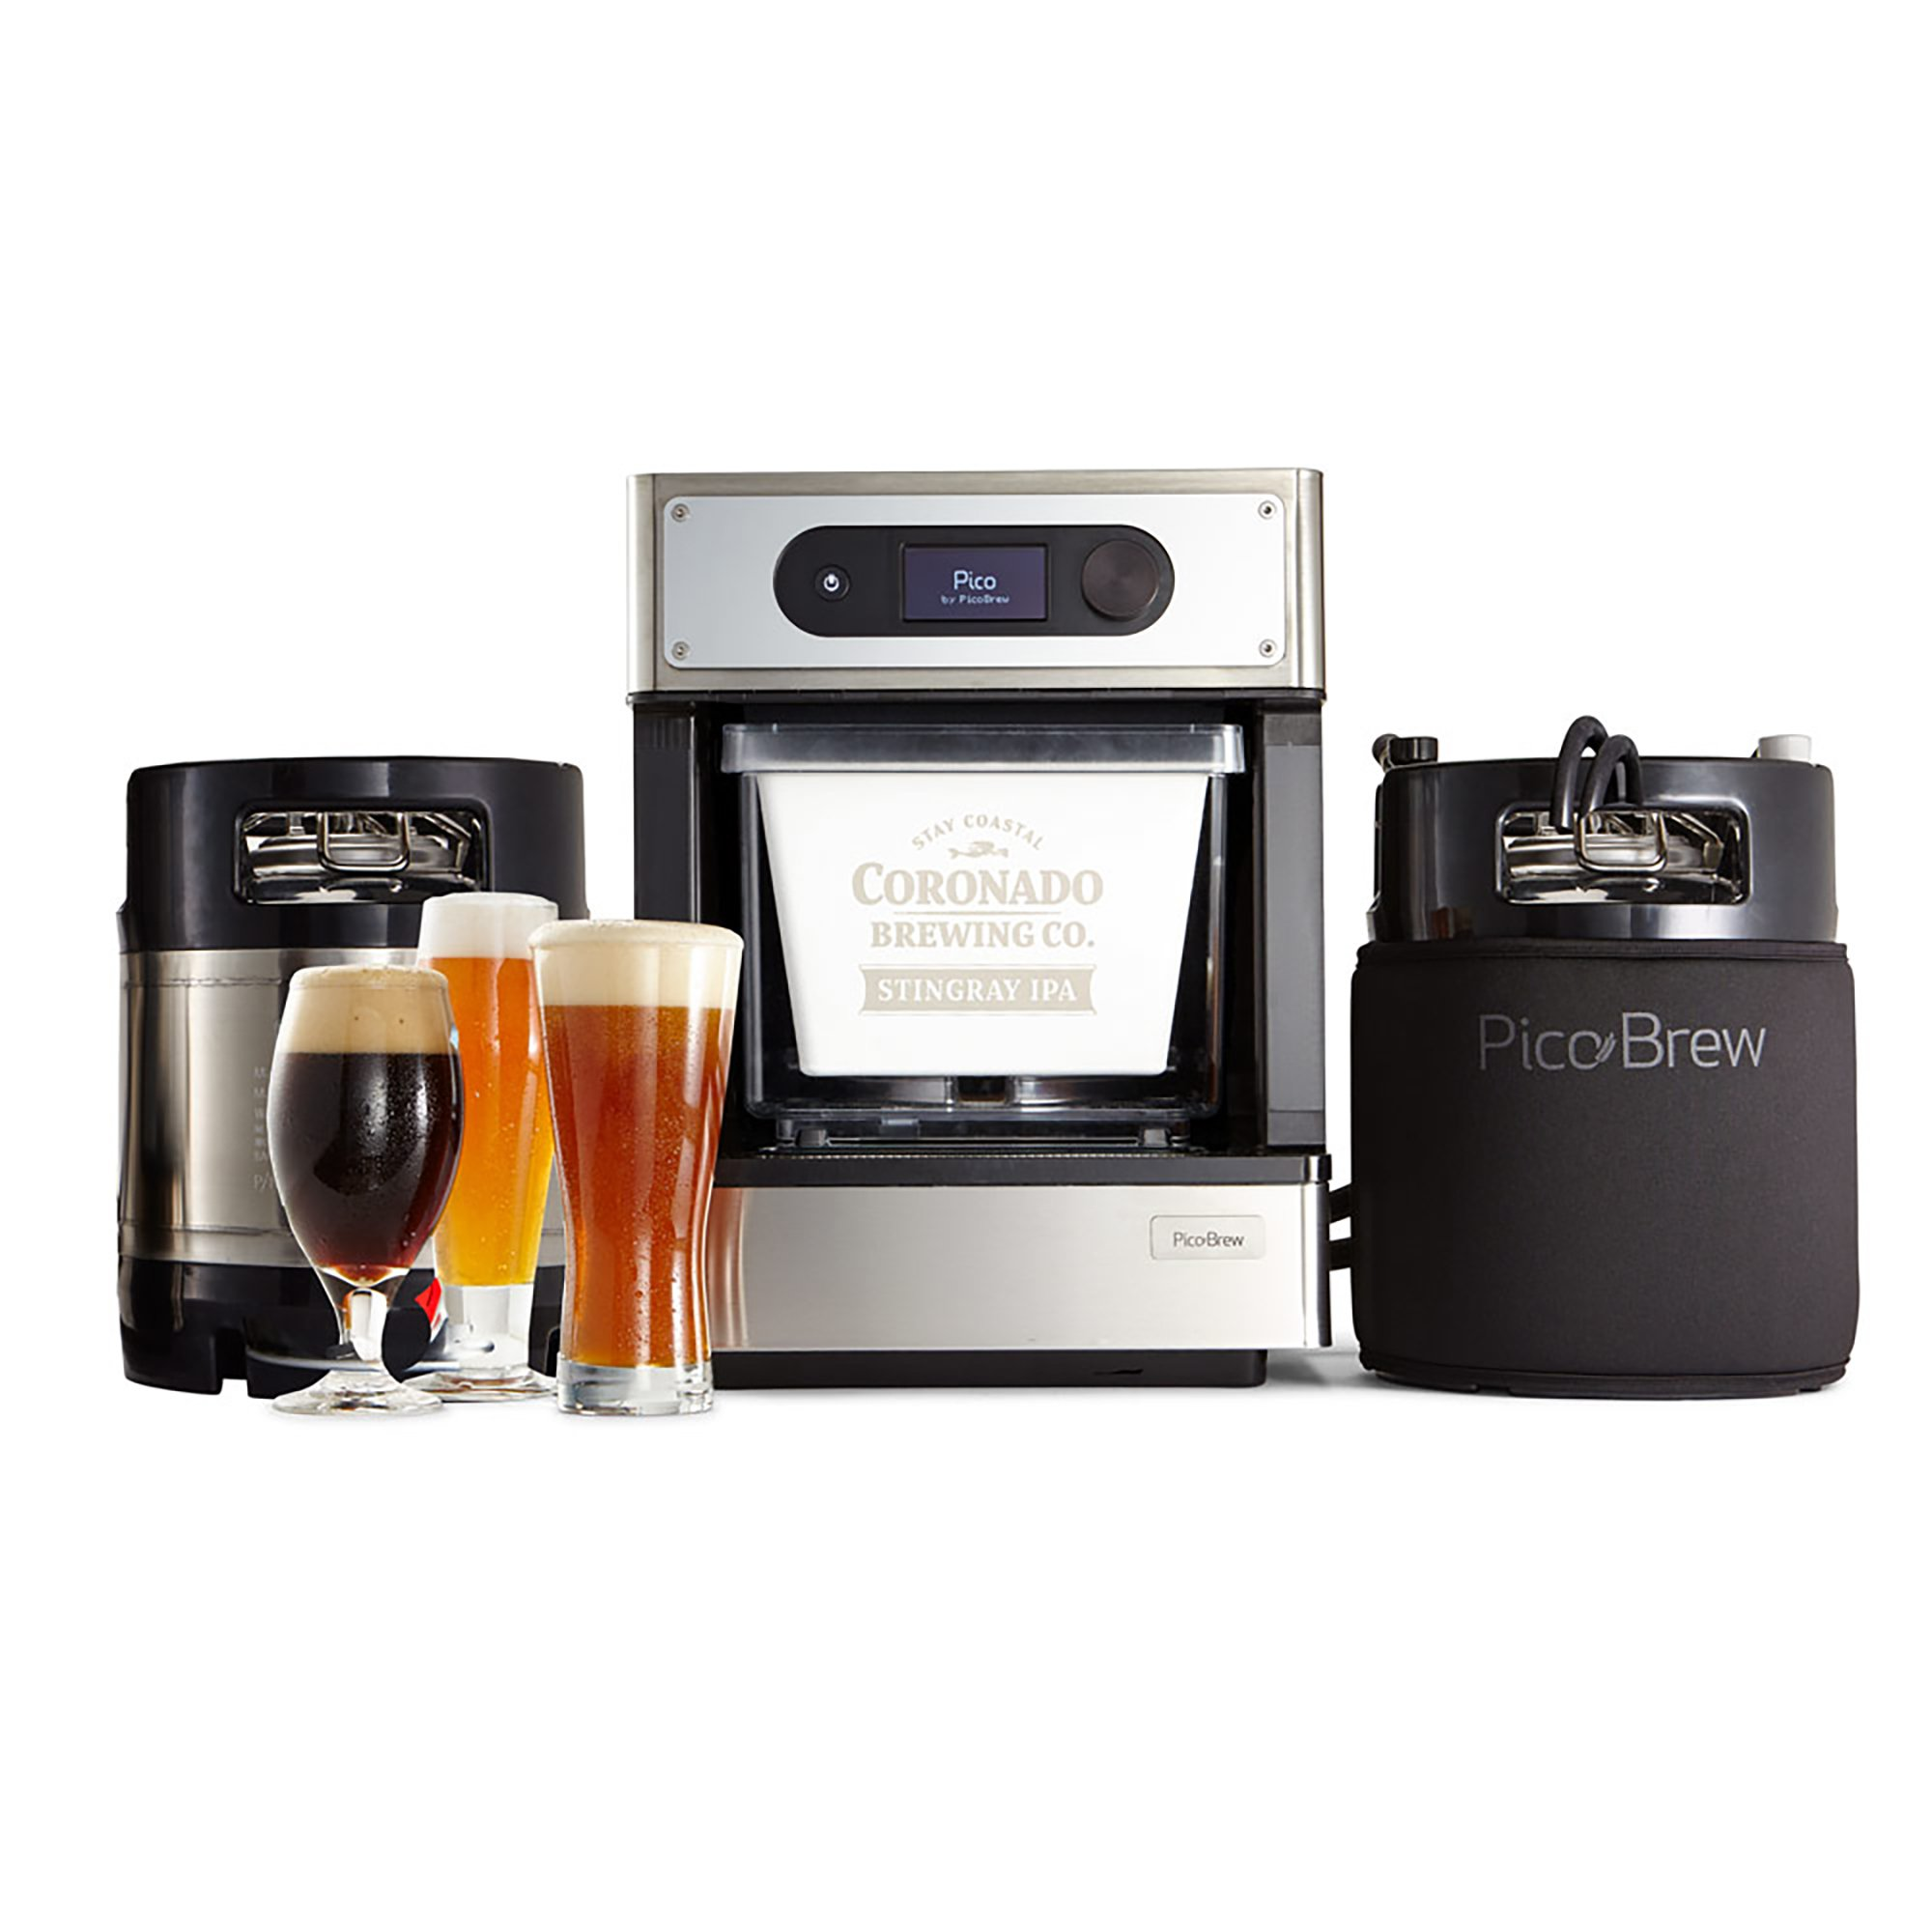 Pico Pro Craft Beer Brewing Appliance for Homebrewing by PicoBrew